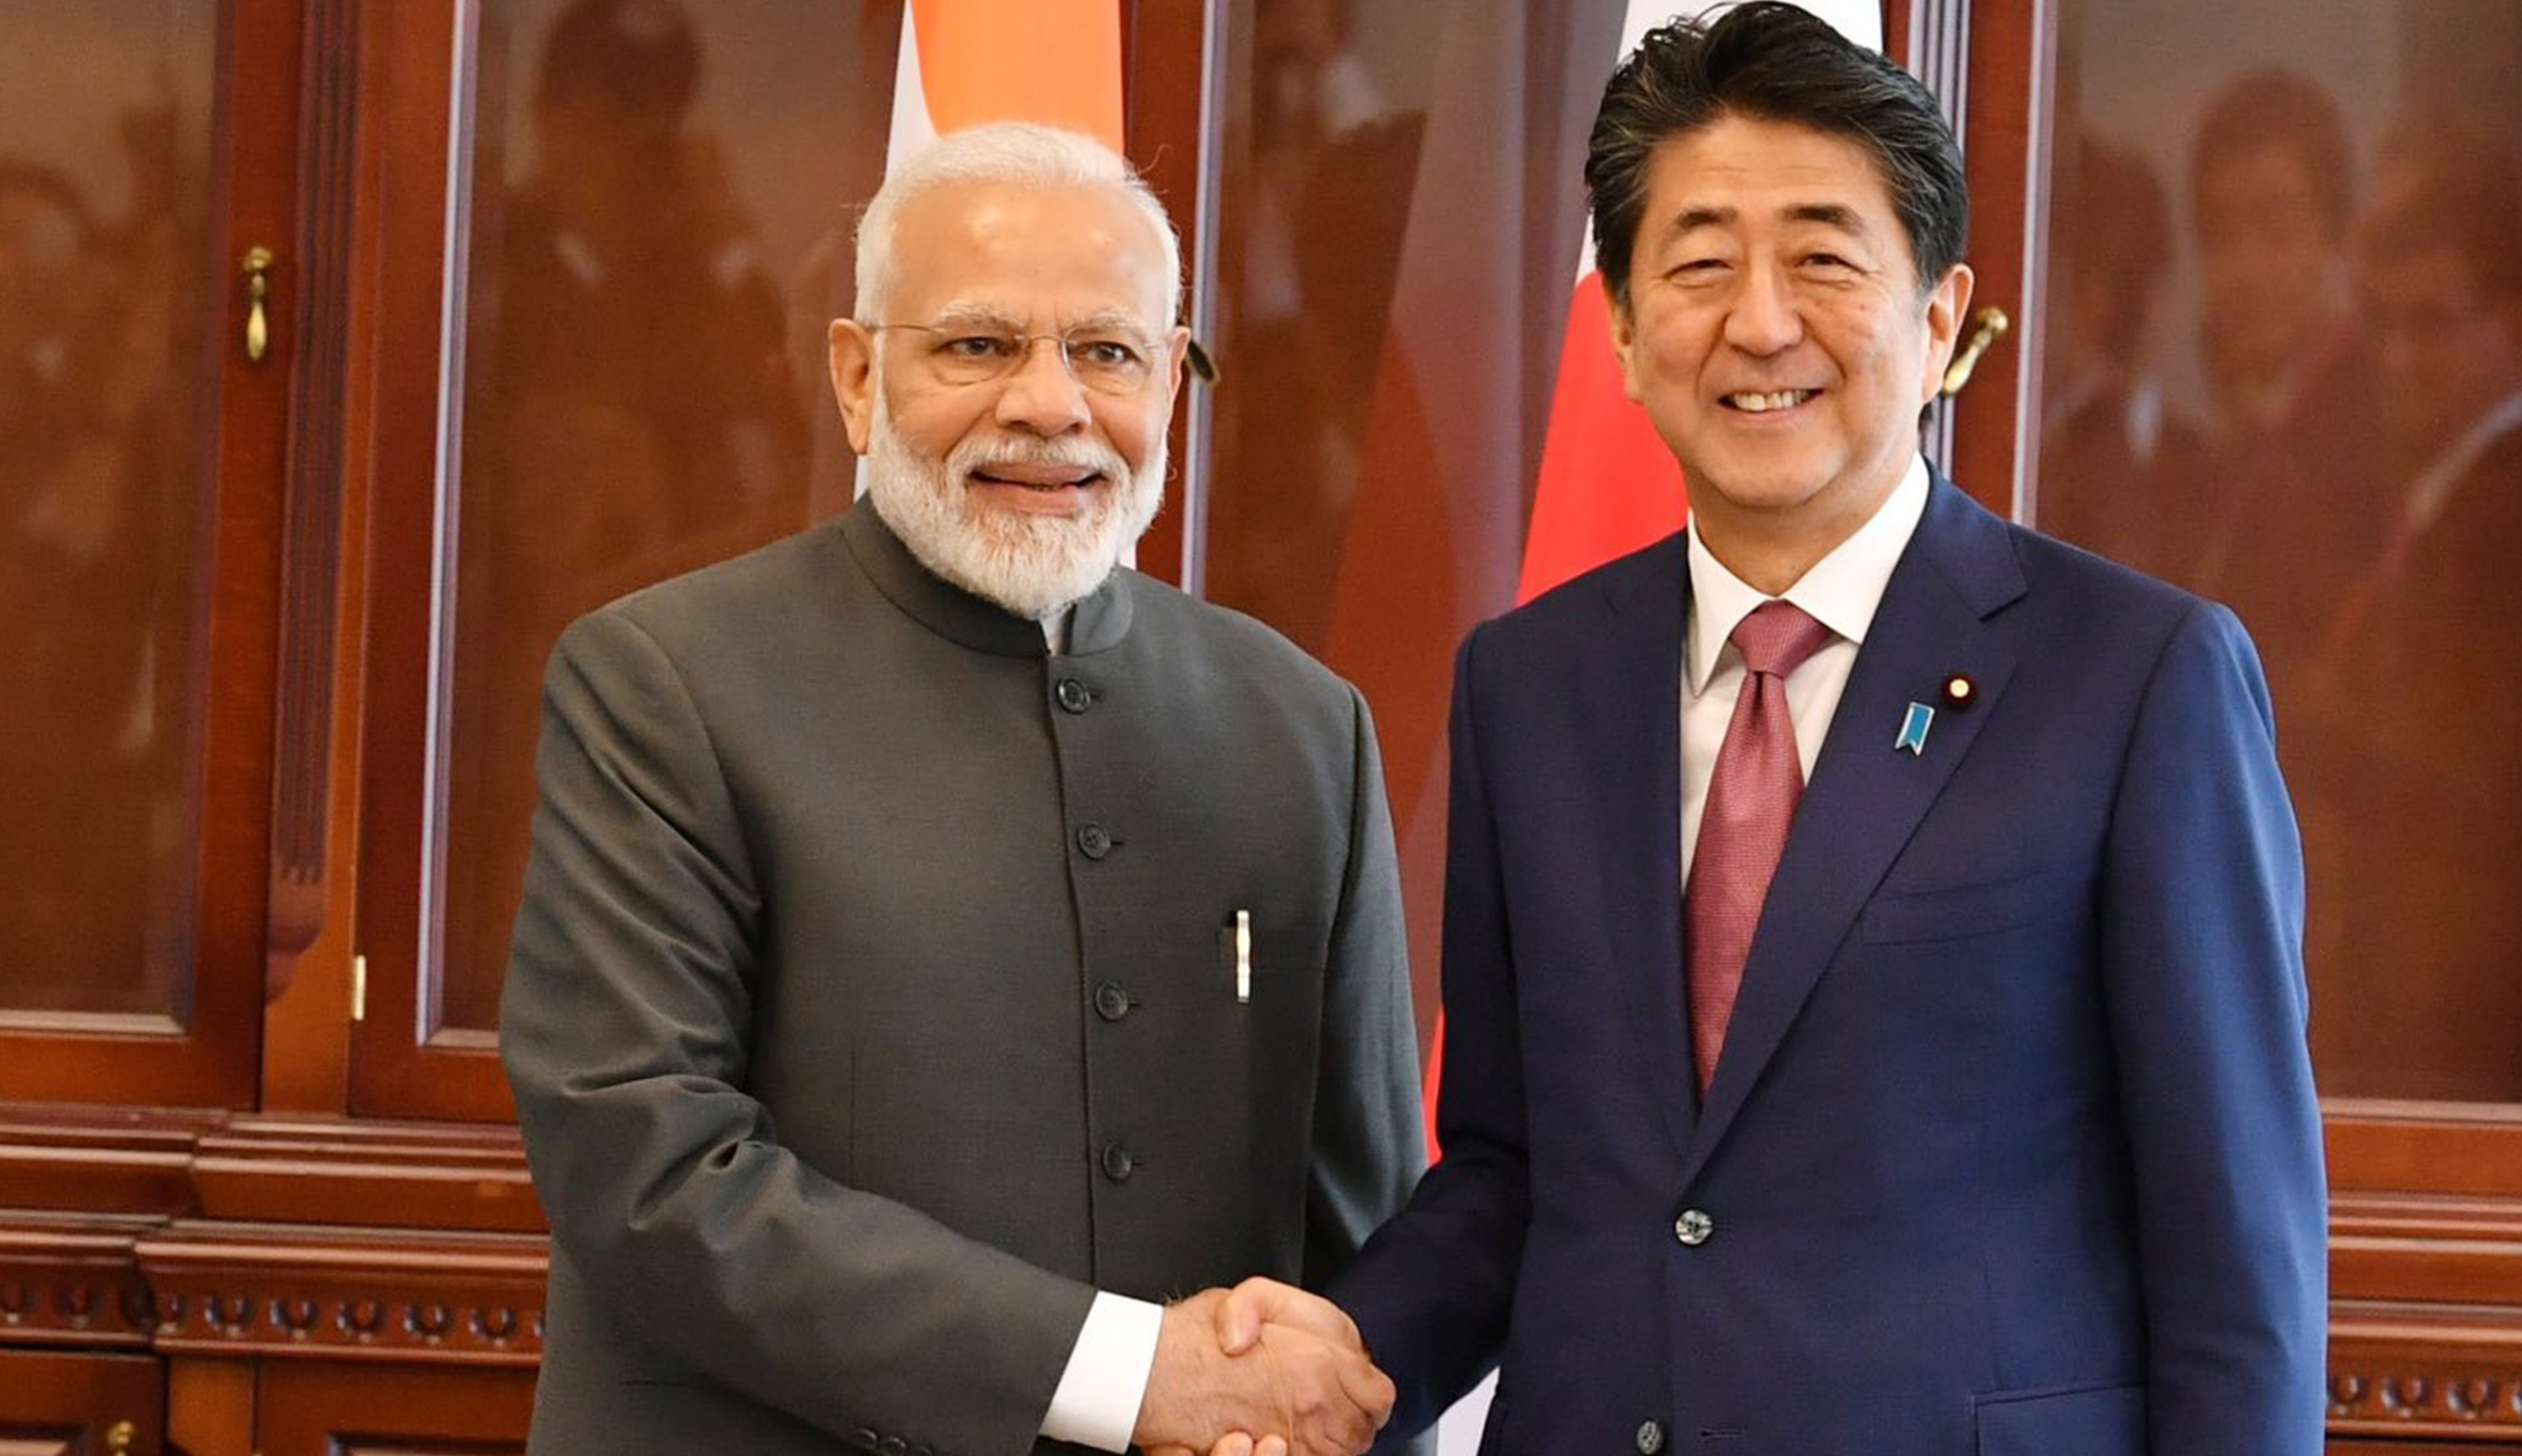 Prime Minister, Narendra Modi, Shinzo Abe, Japan, Vladivostok, Russia, NewsMobile, Mobile, news, India, World